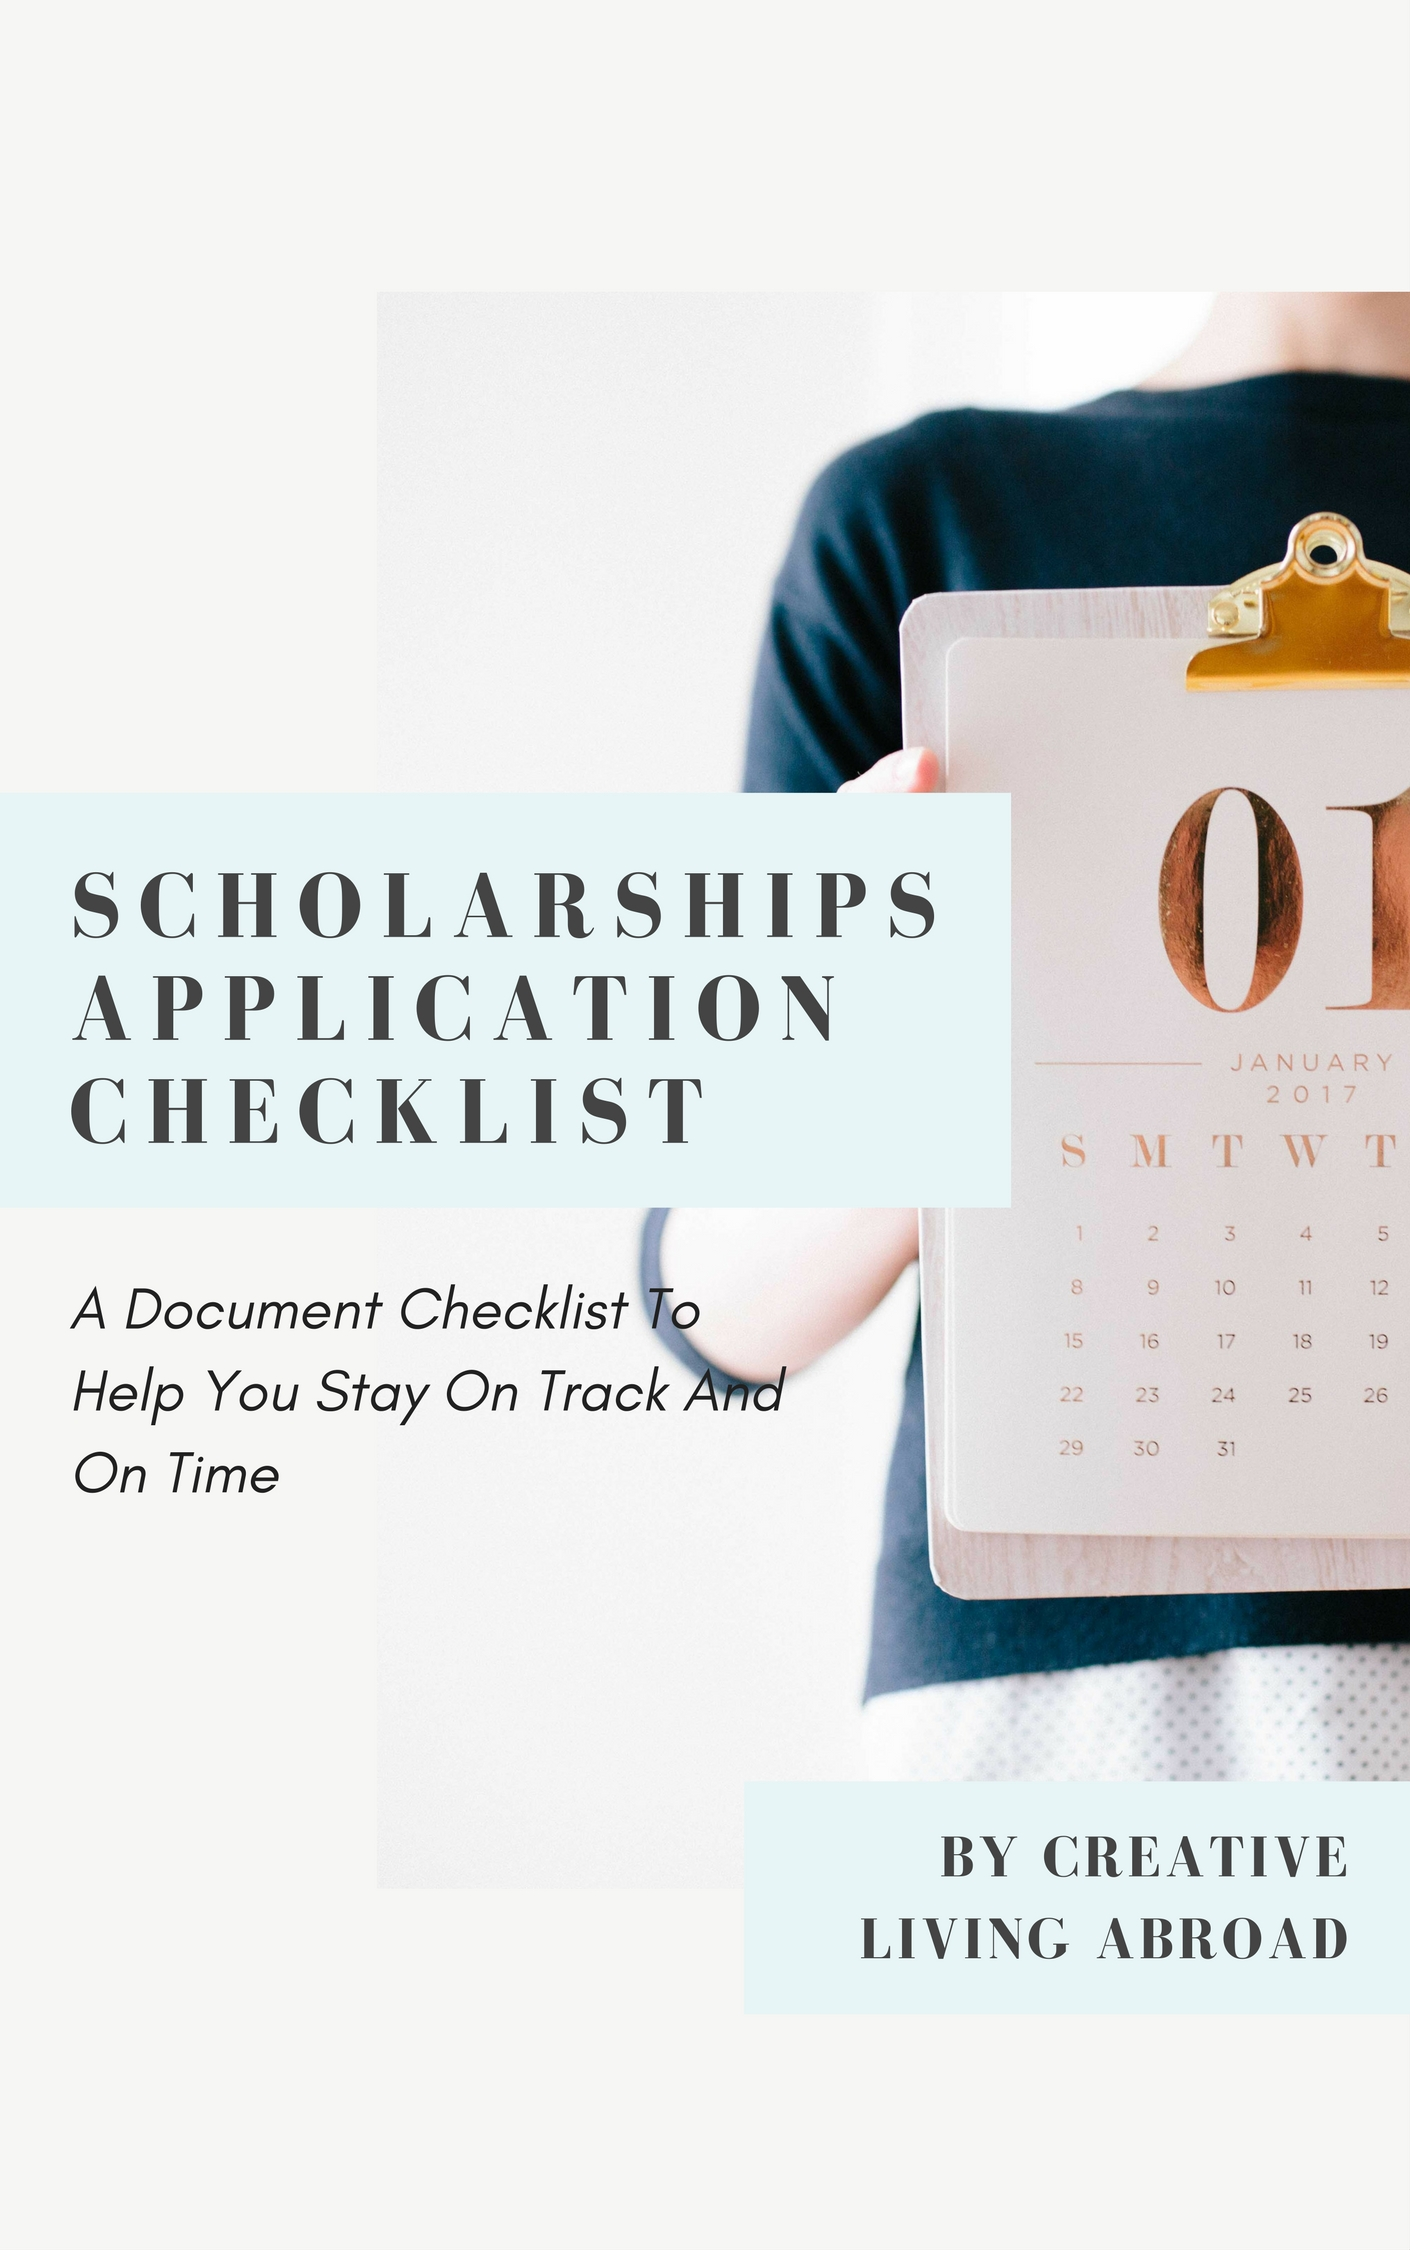 scholarships application checklist printable